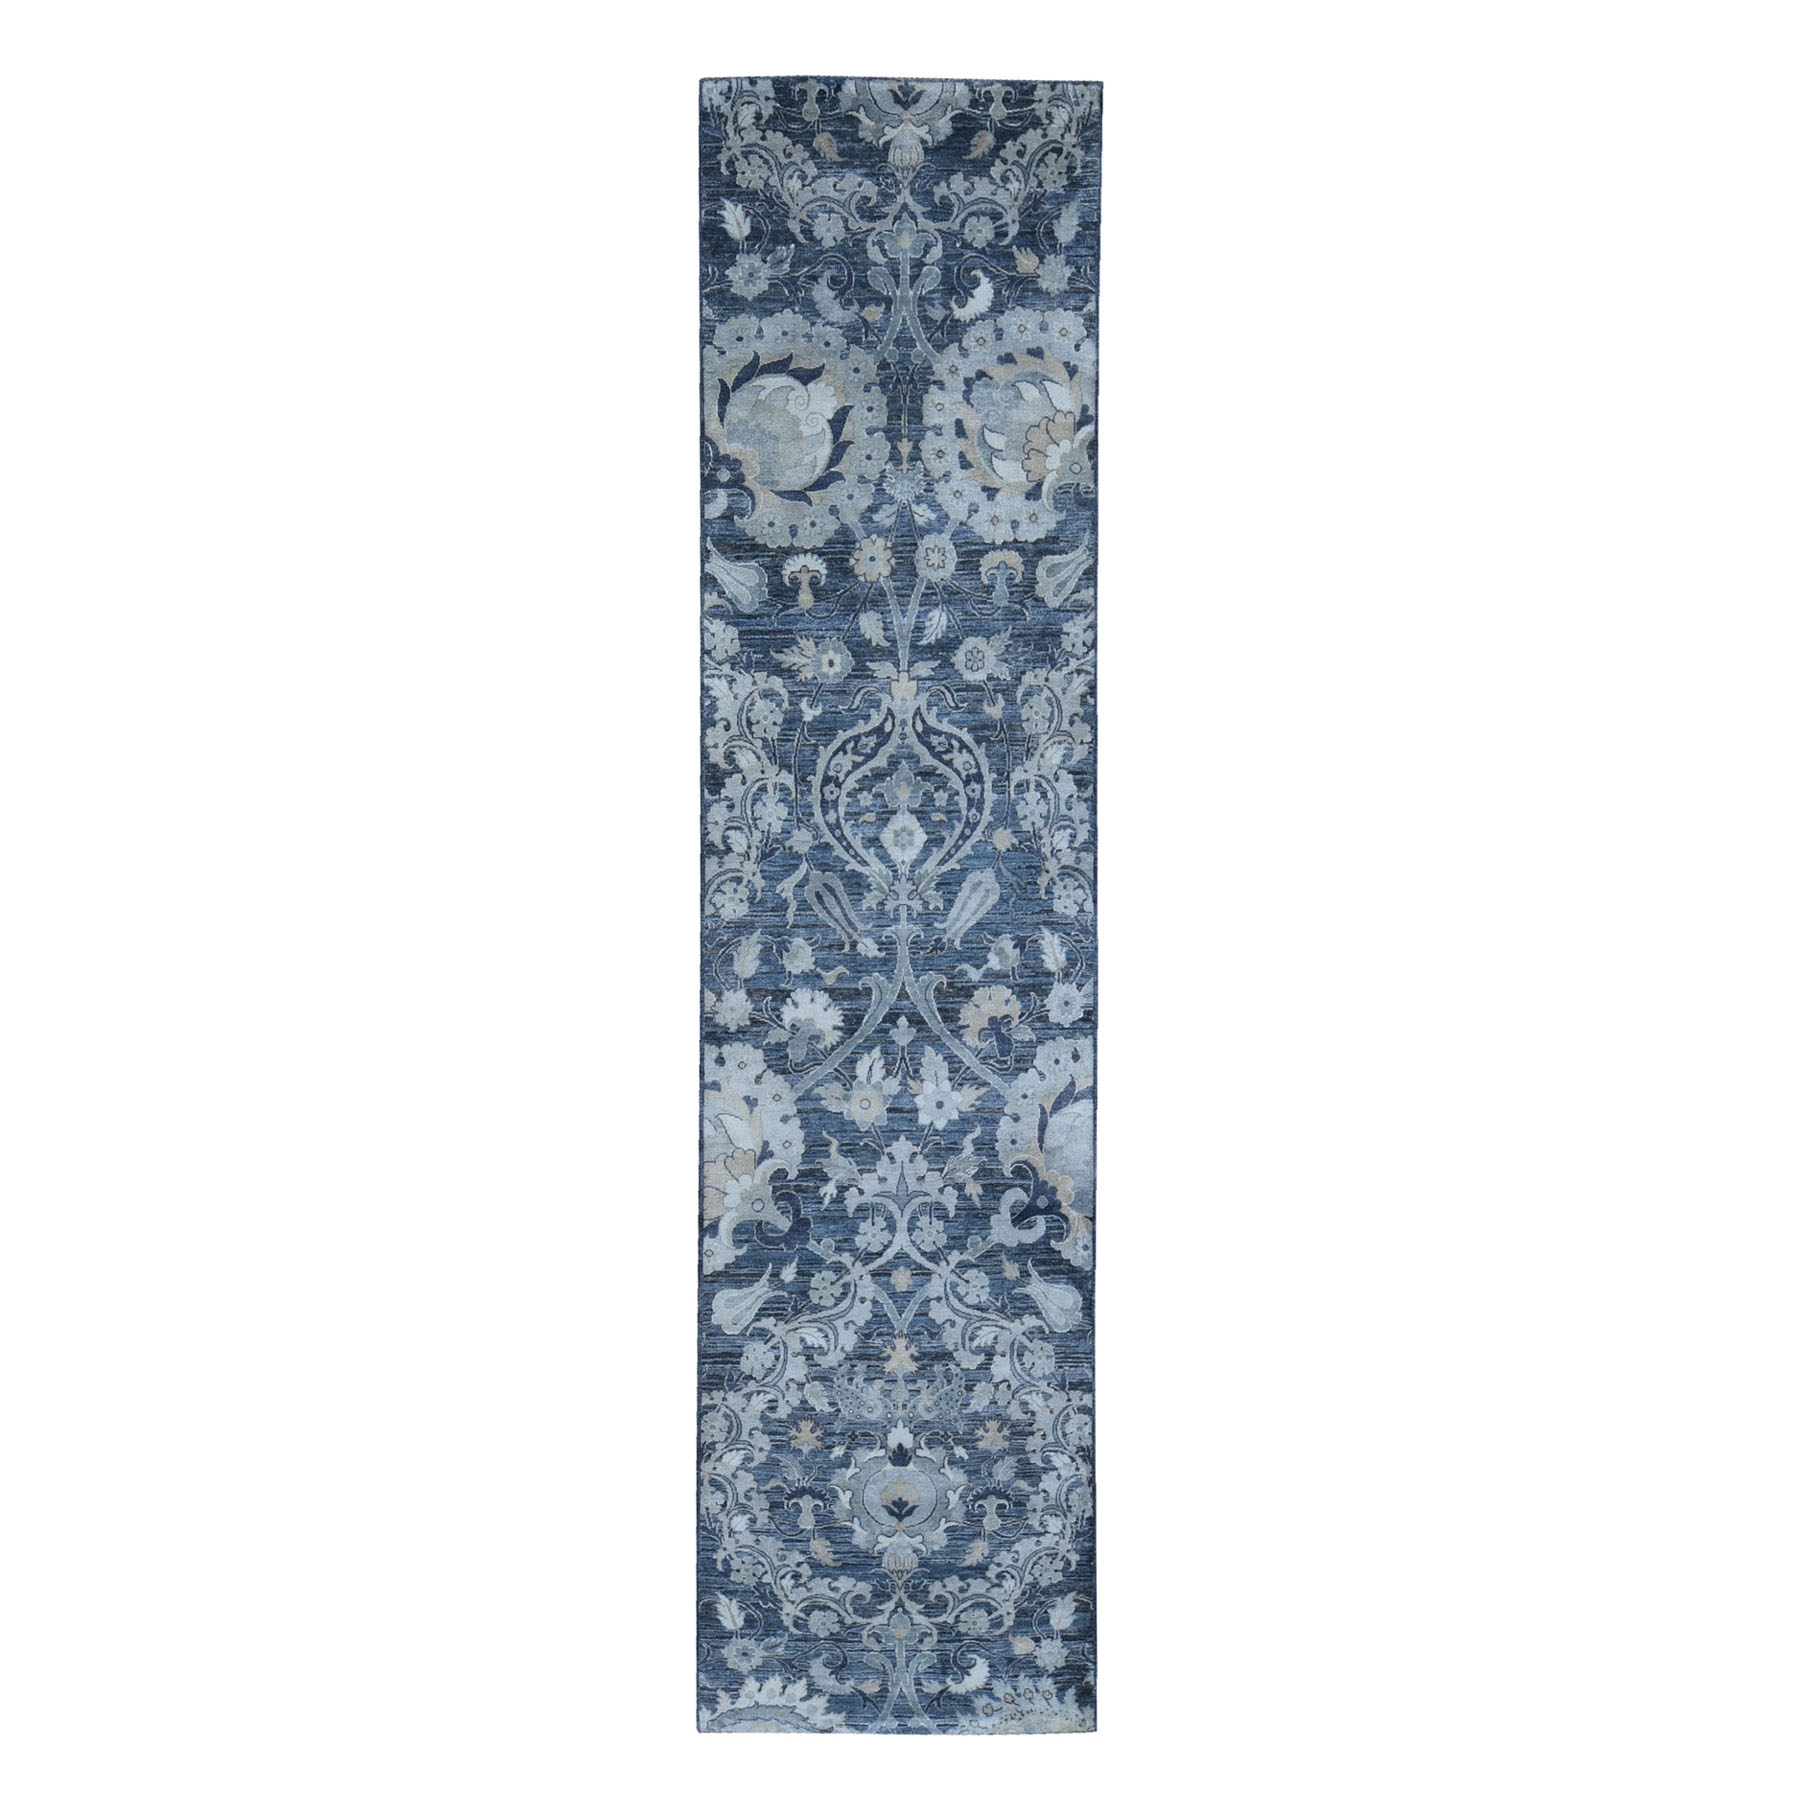 Wool and Real Silk Collection Hand Knotted Grey Rug No: 1119906